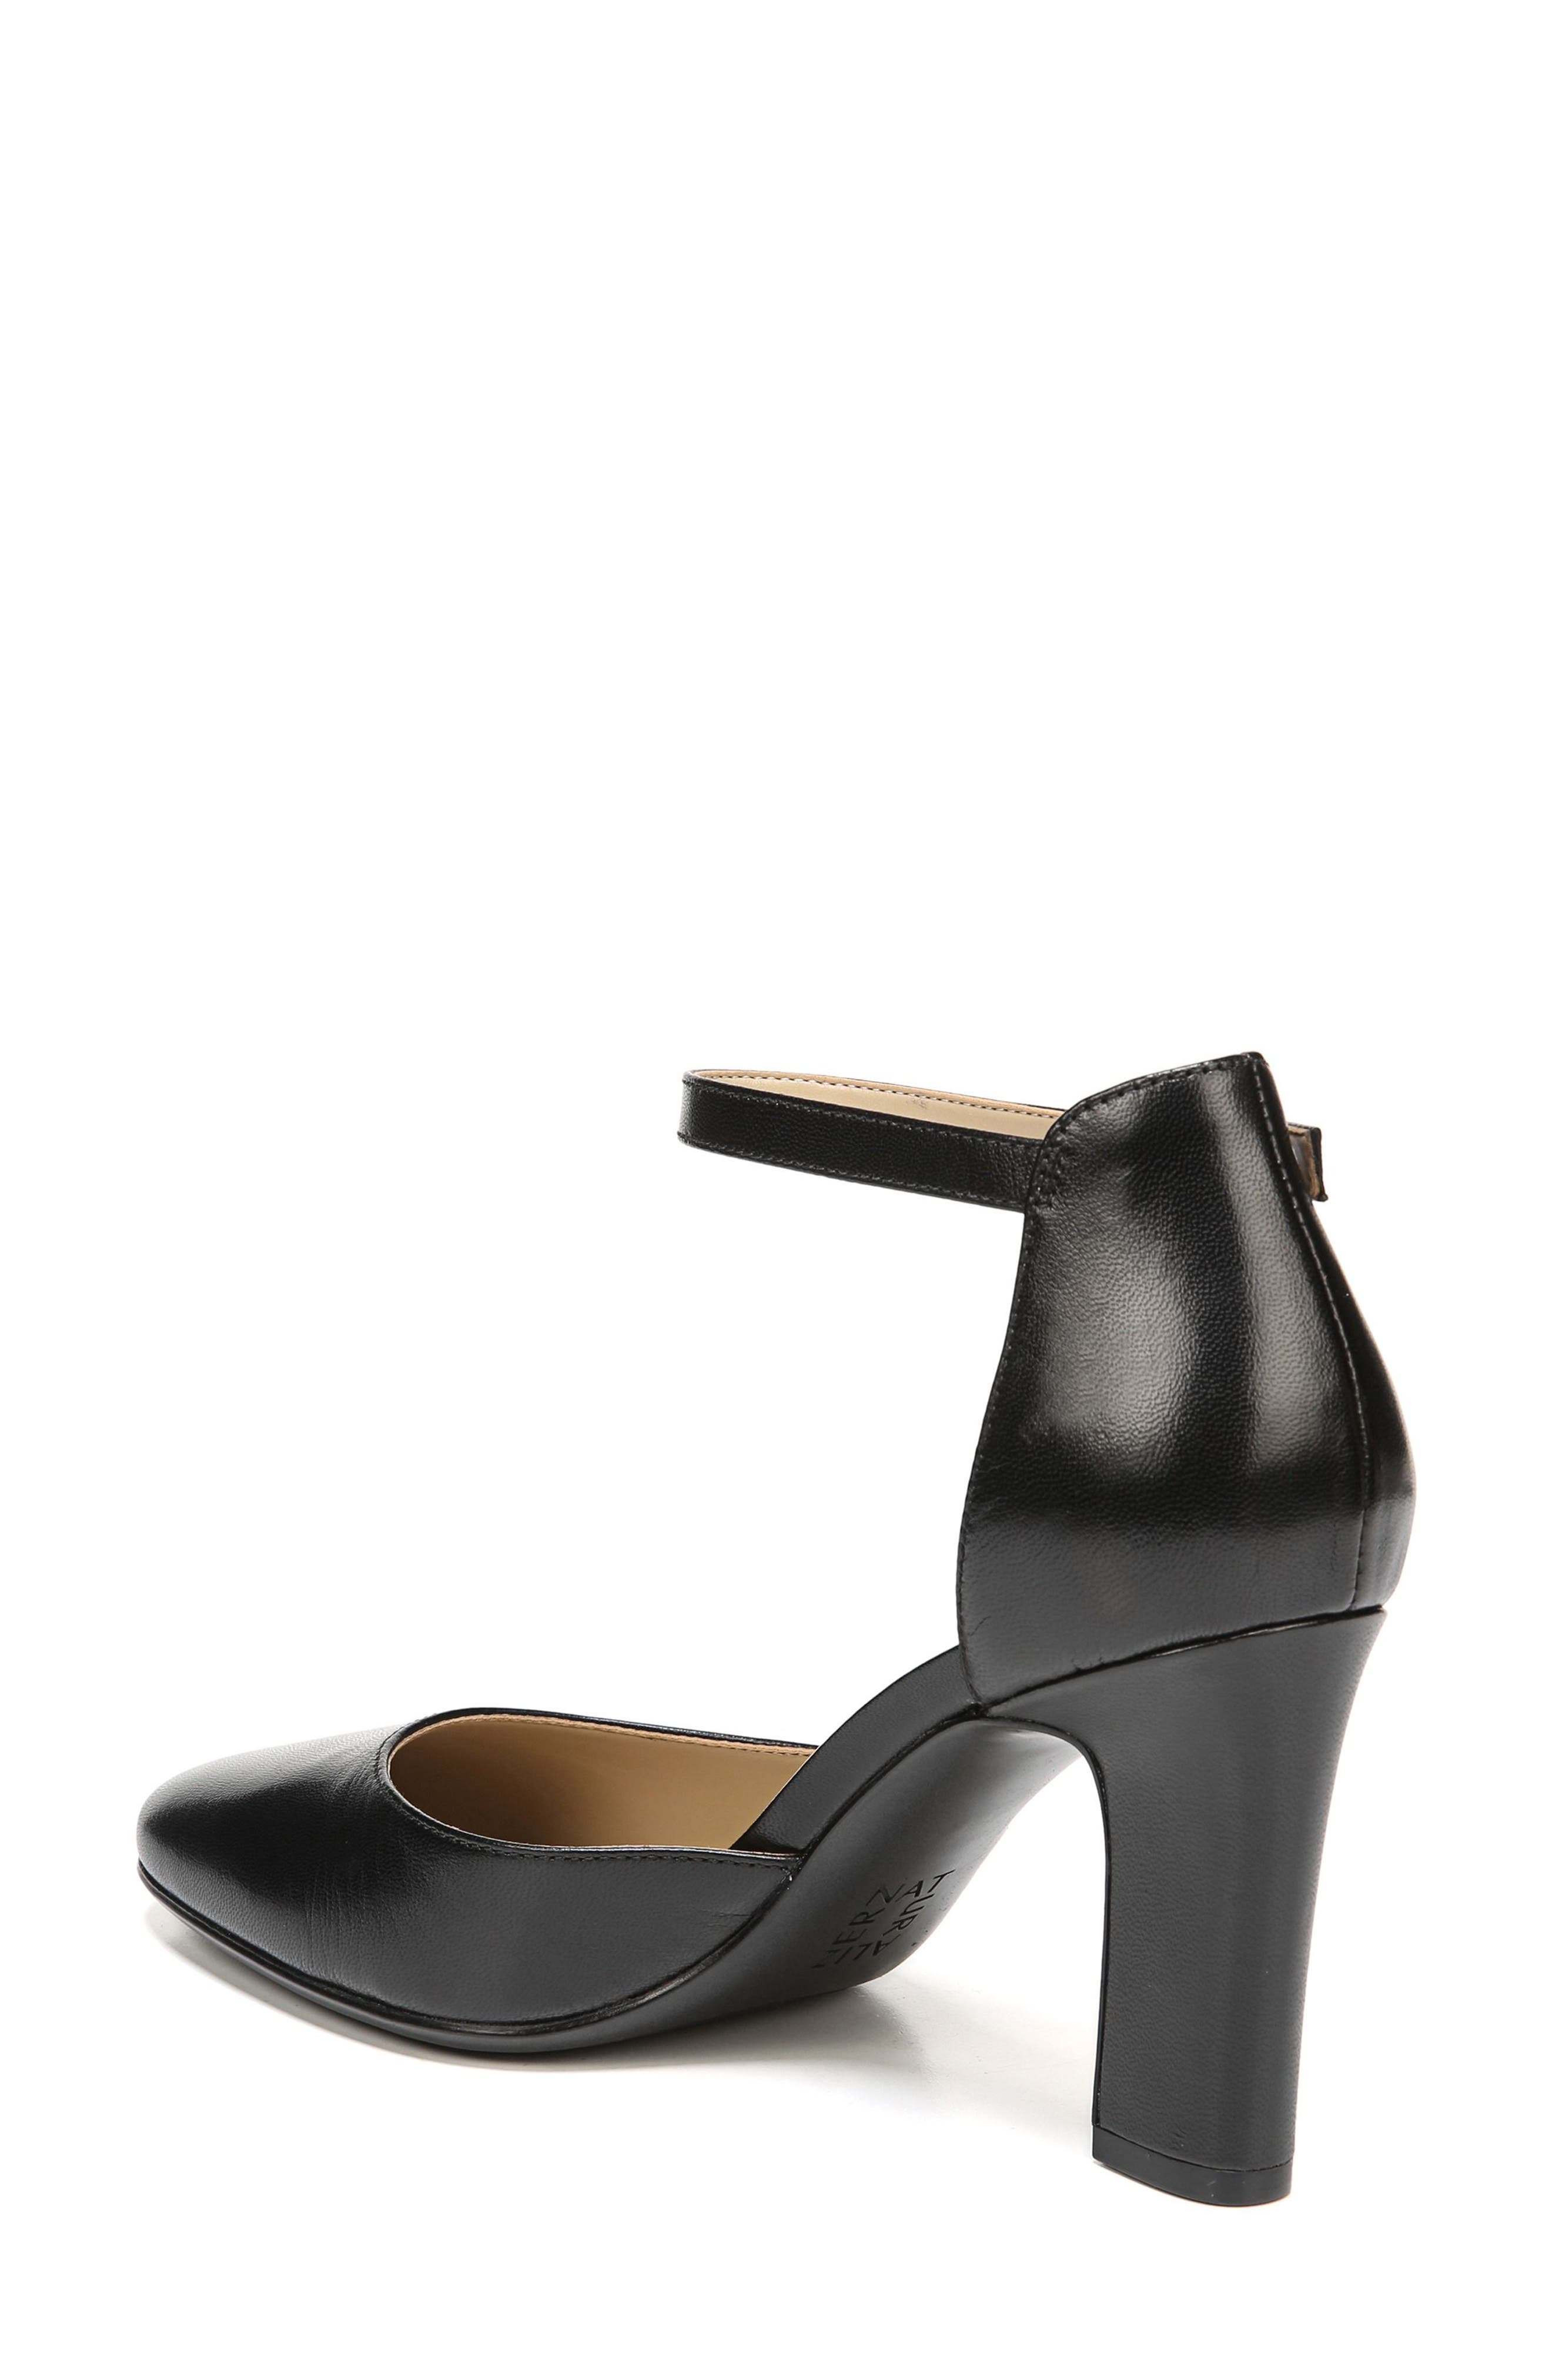 Gianna Ankle Strap Pump,                             Alternate thumbnail 2, color,                             BLACK LEATHER